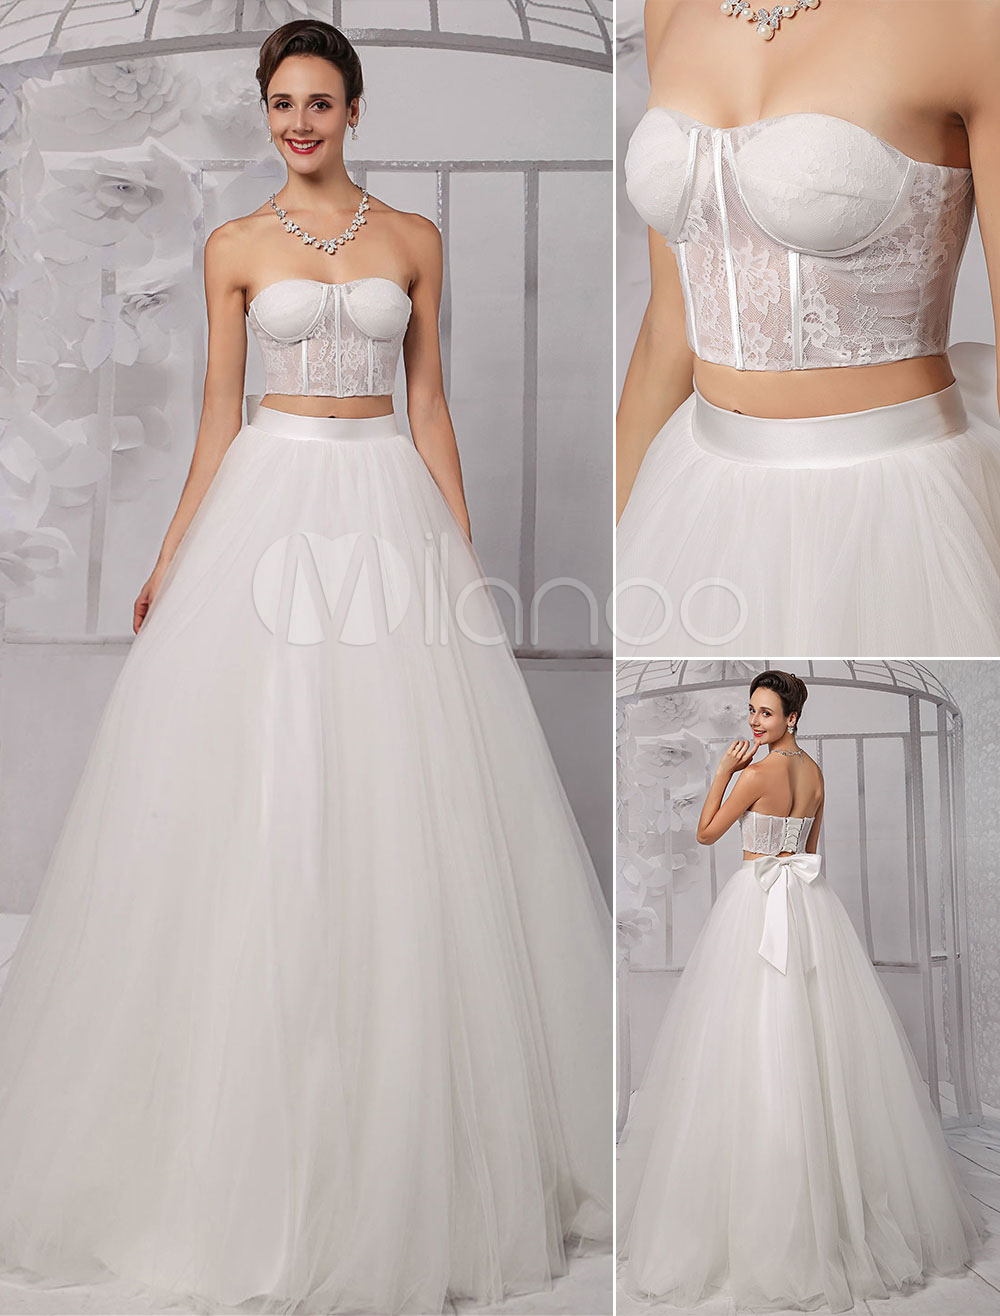 twopieces strapless lace corset crop top ball gown